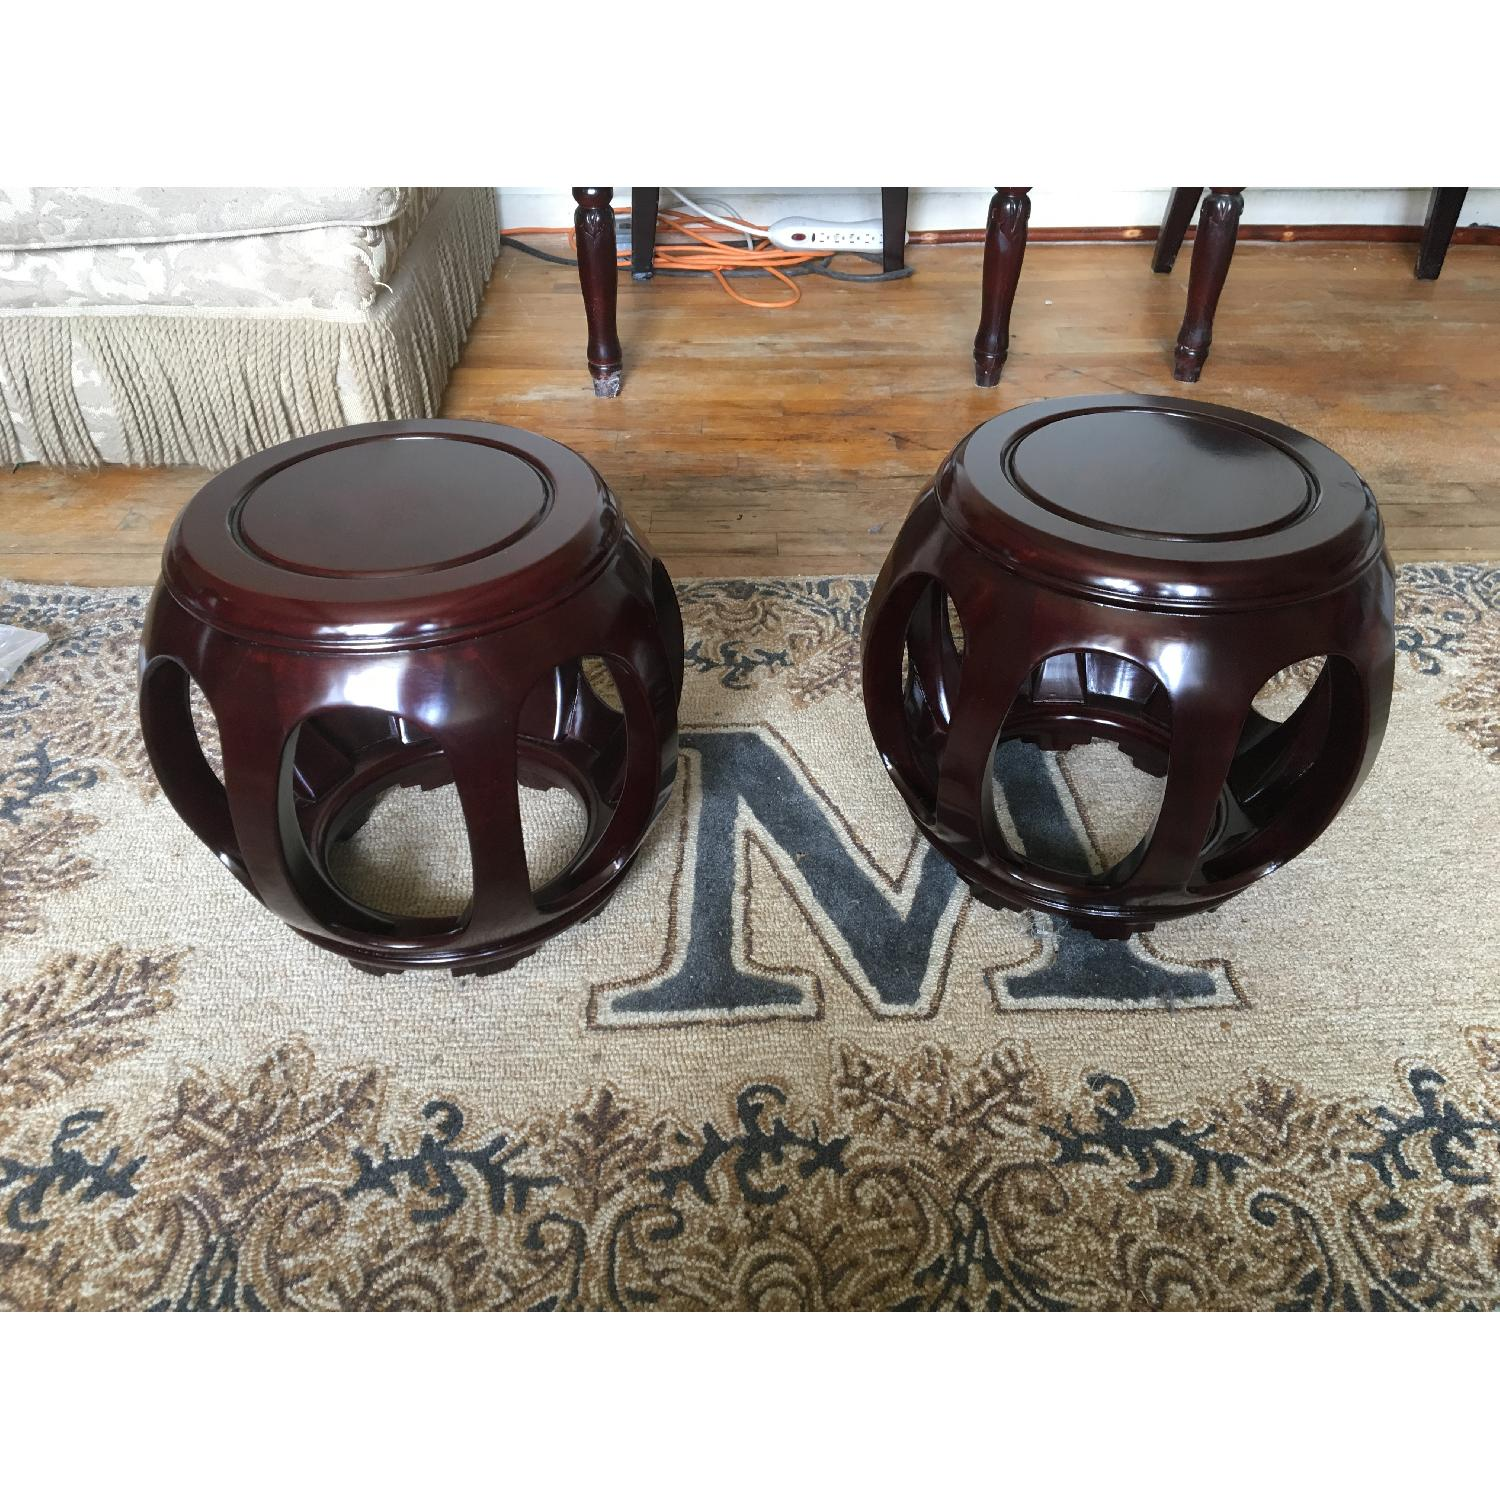 Sculptural Asian Stools/End Tables - image-1